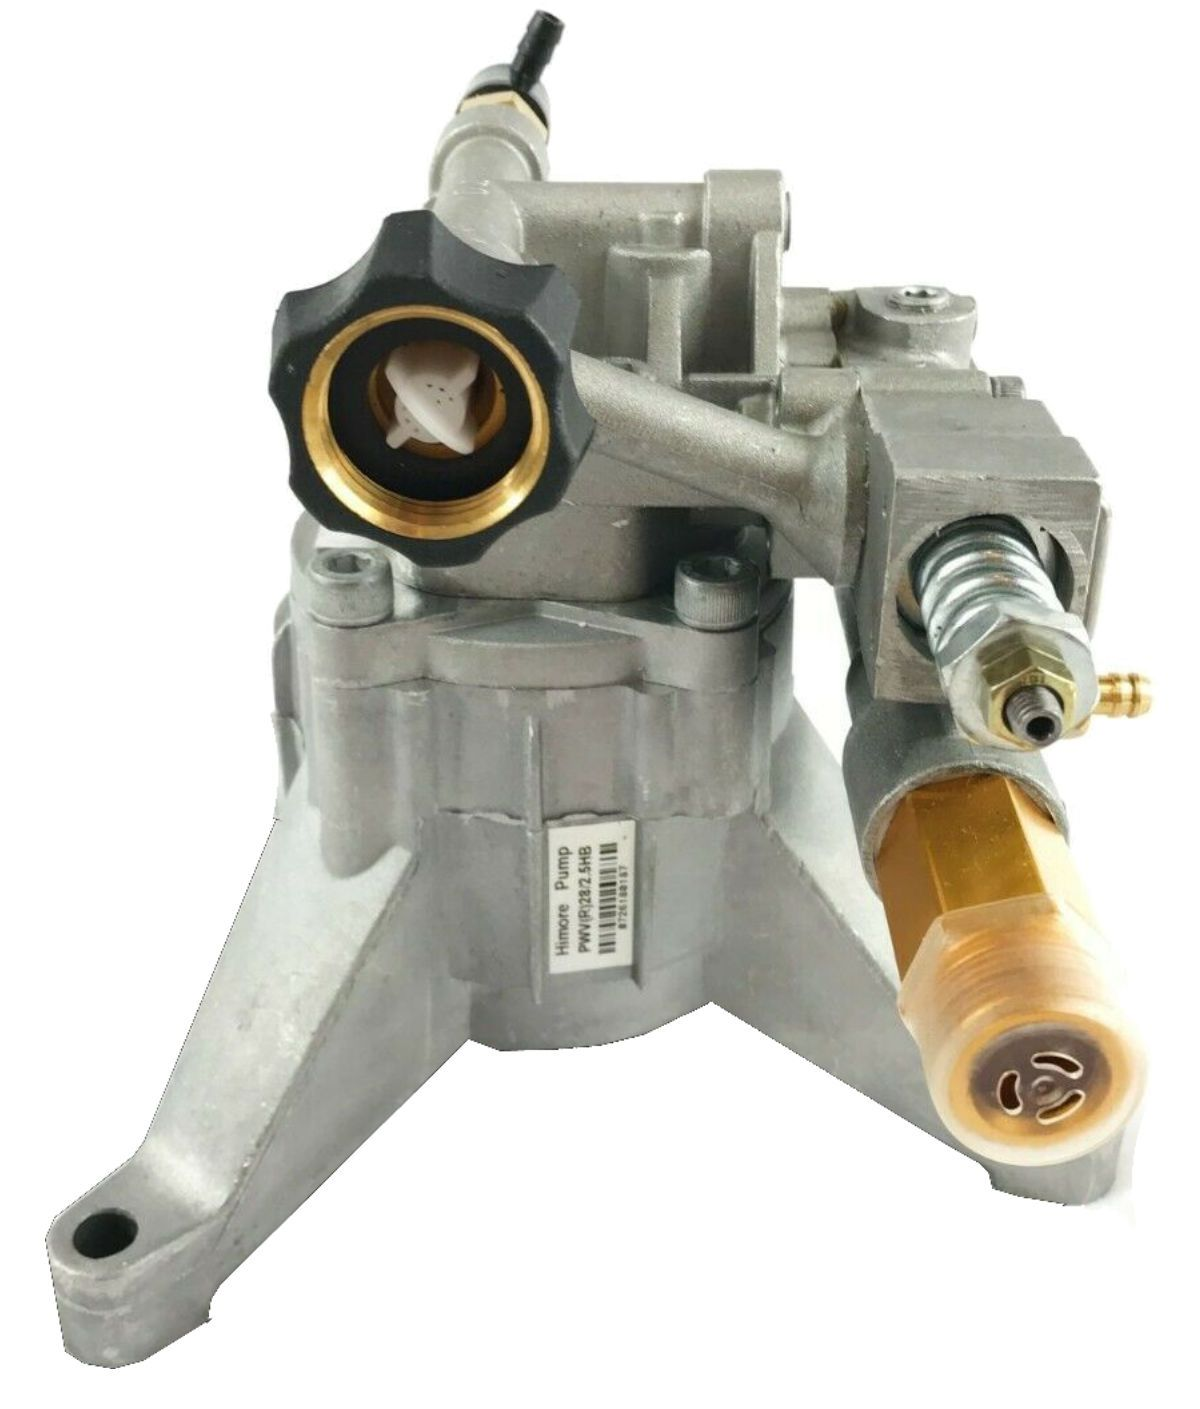 2700 PSI PRESSURE WASHER WATER PUMP Brute 020385-0 020386-0 - AE-Power